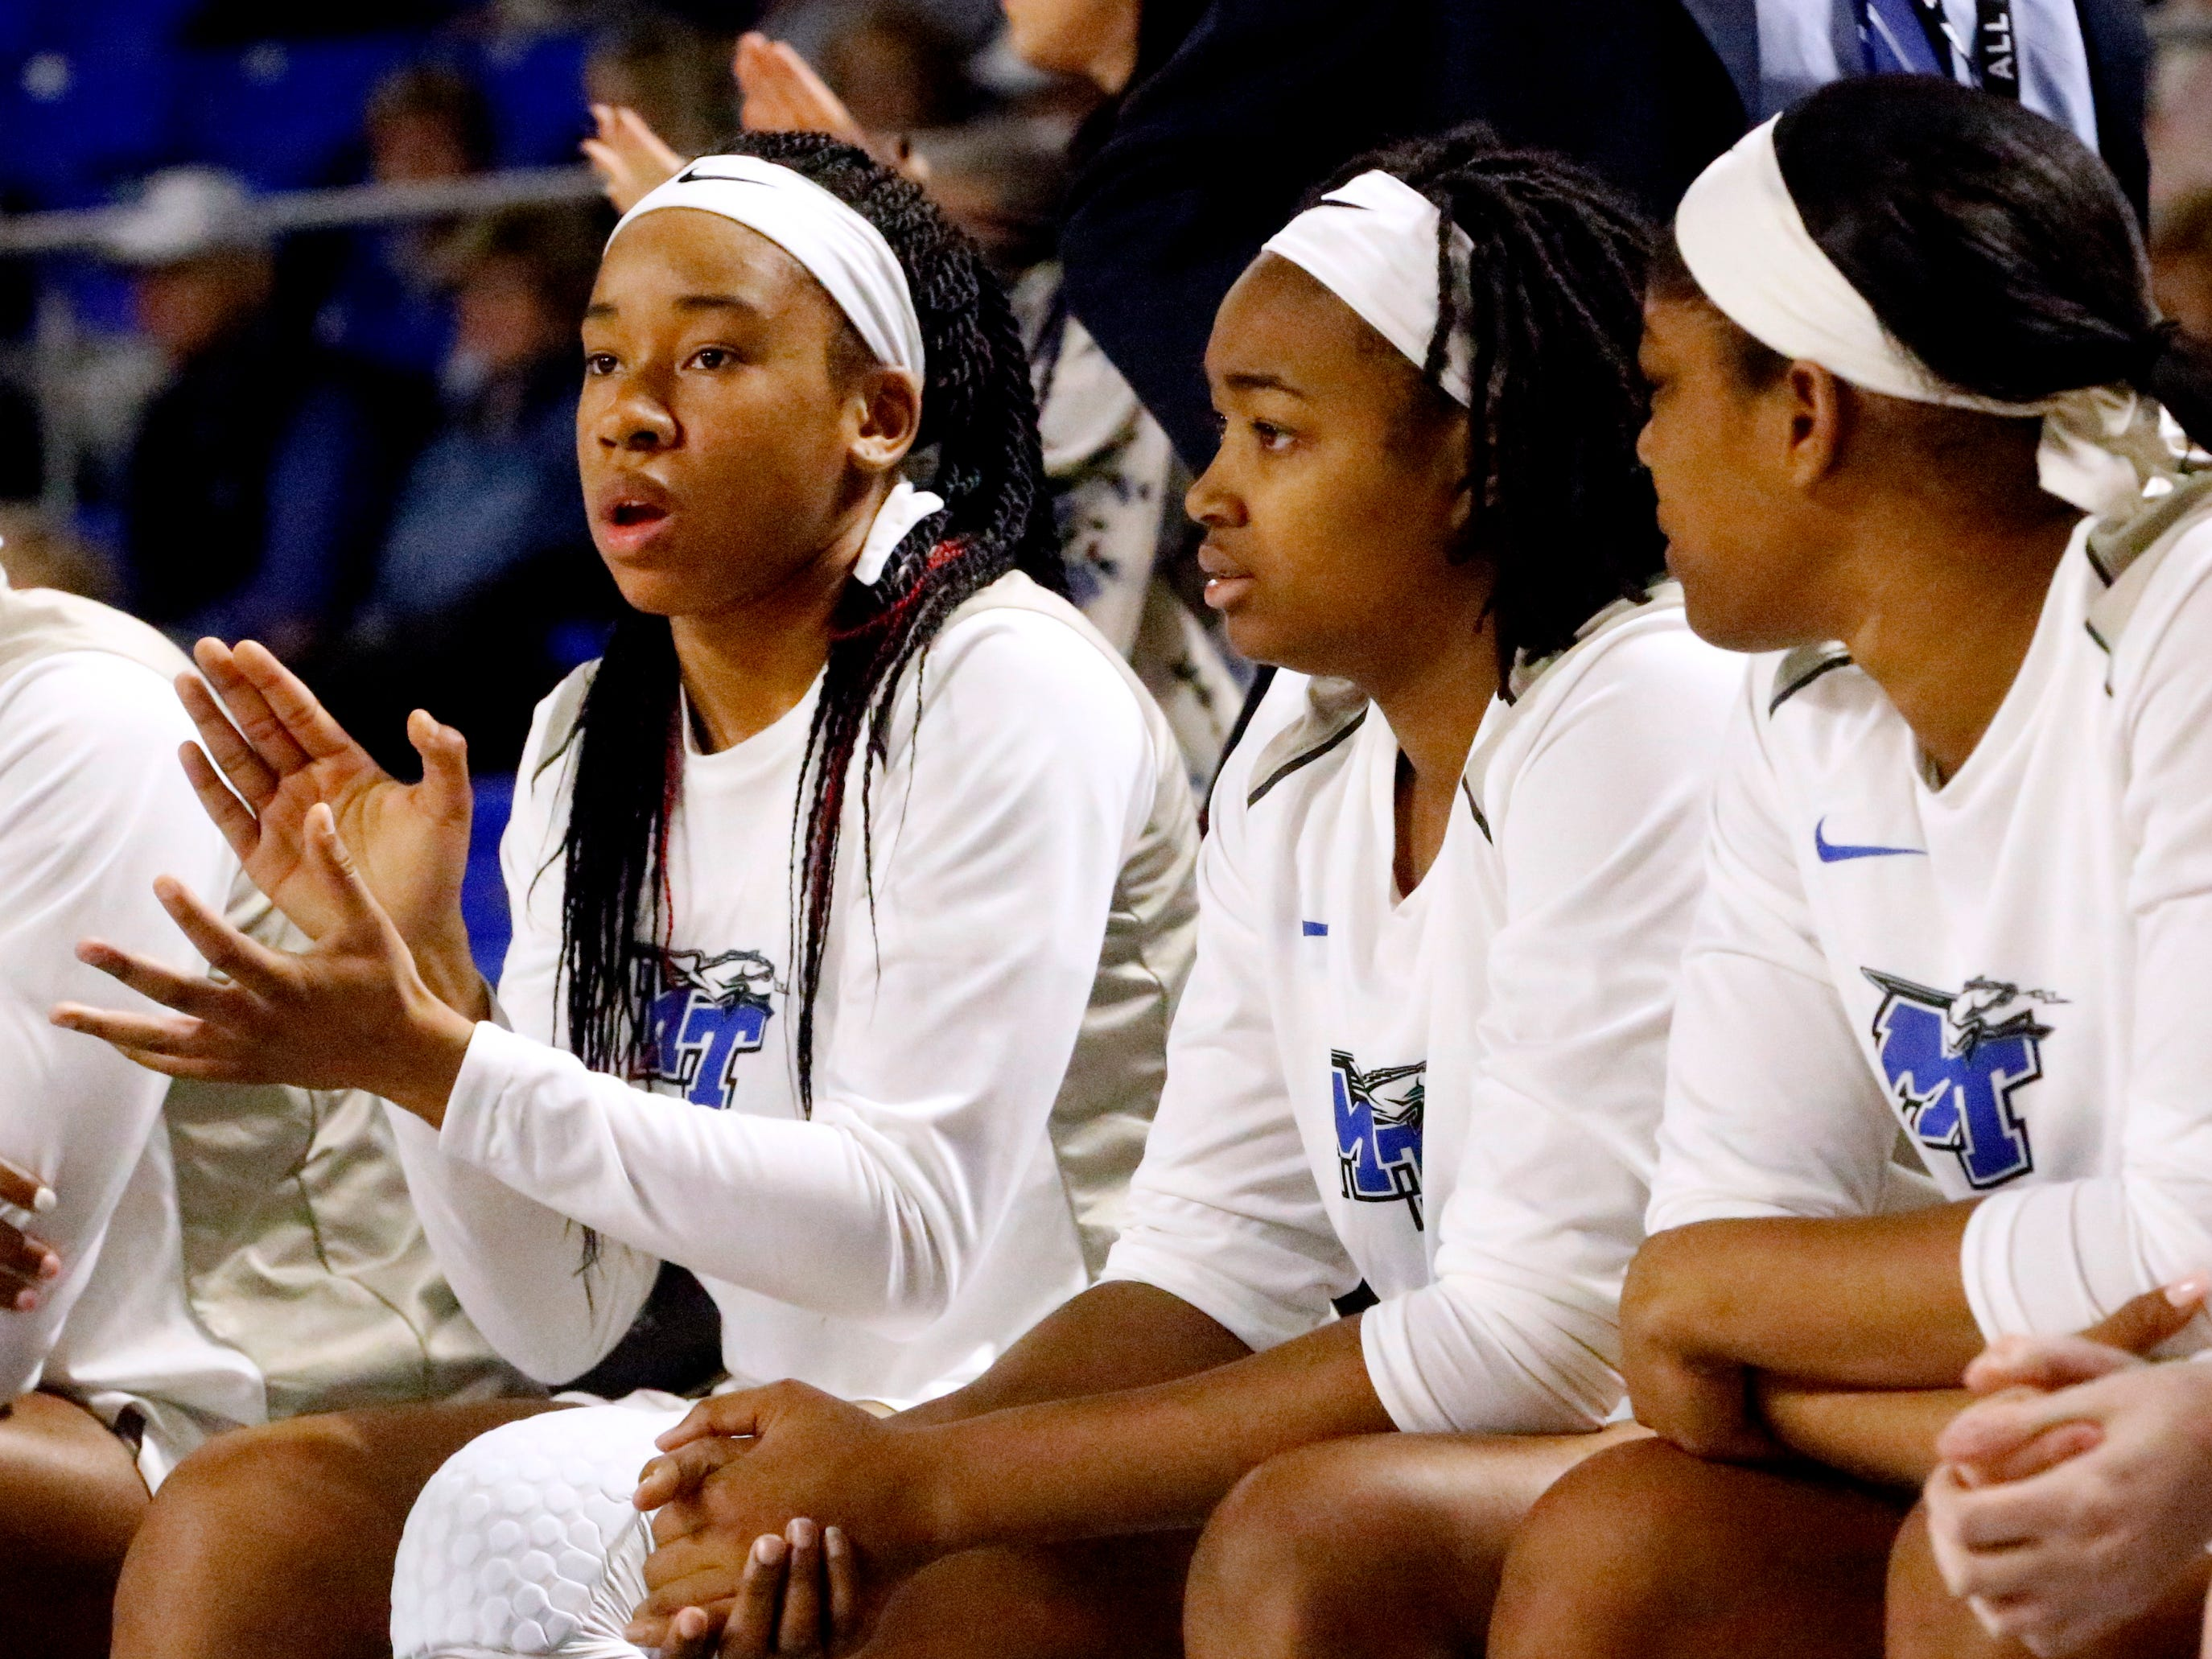 MTSU's guard Kyla Allison (3) cheers on the team as they play against Rice on Thursday Jan. 24, 2019.